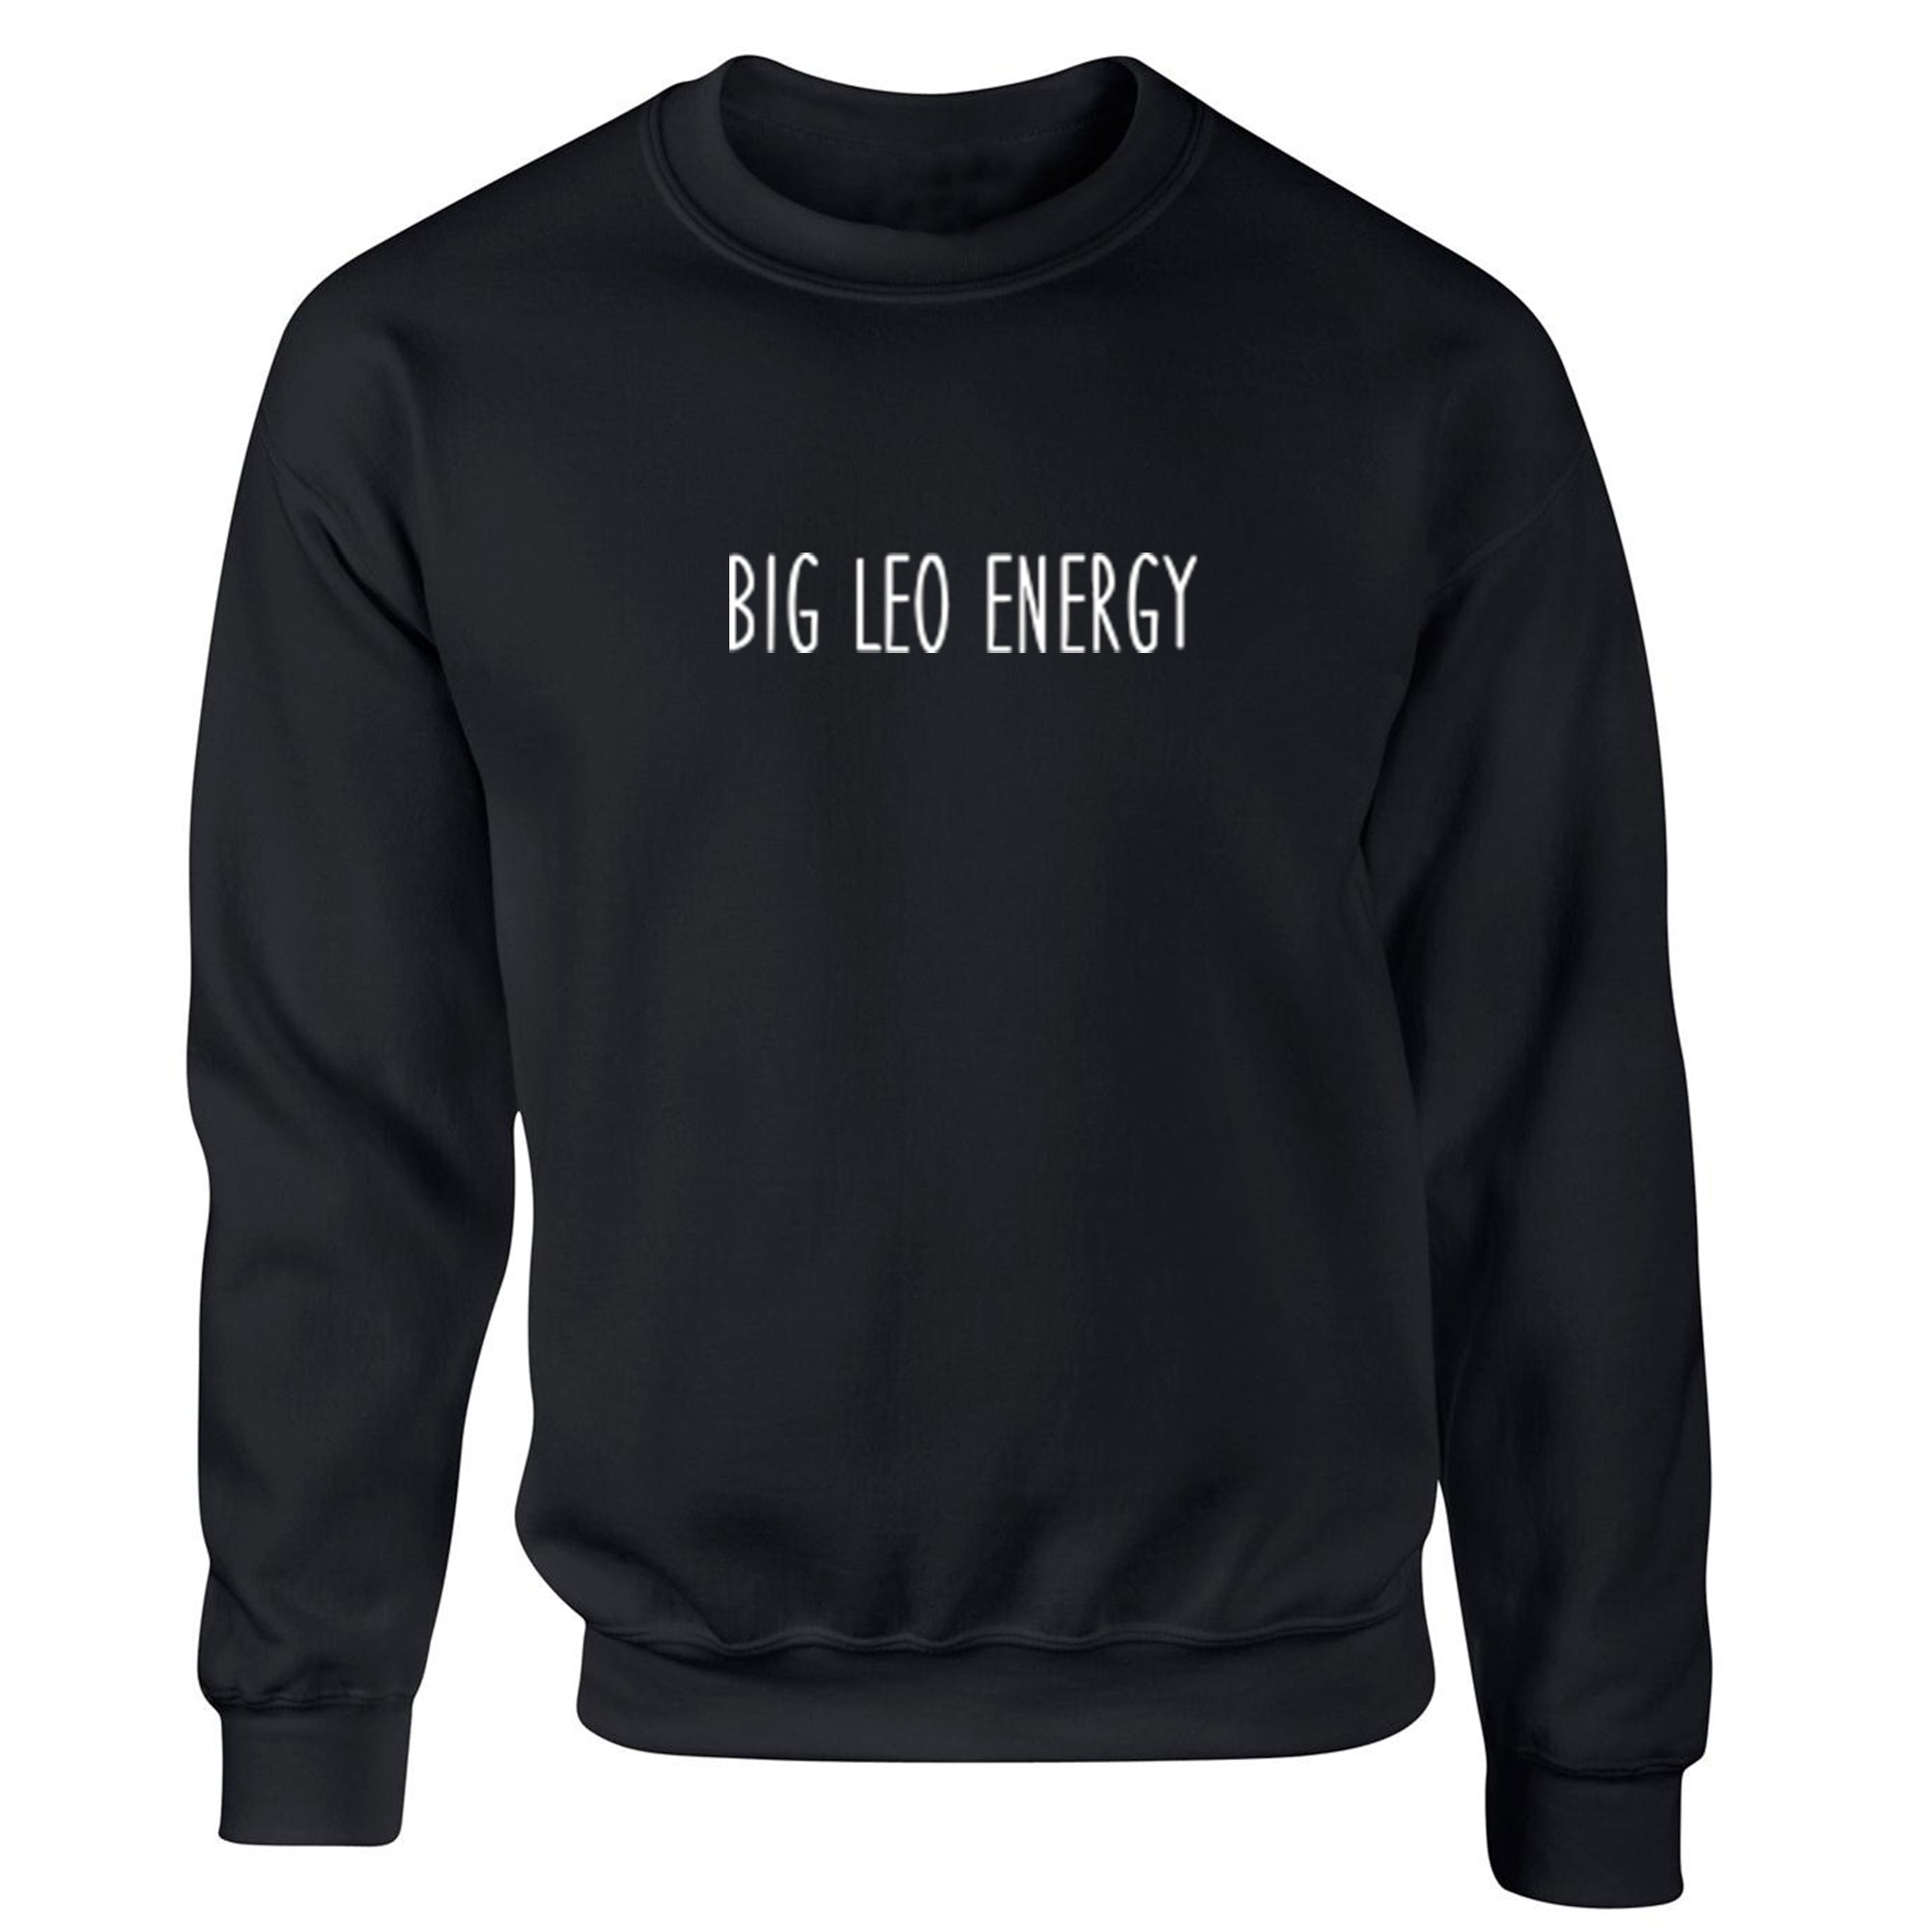 Big Leo Energy Unisex Jumper S1014